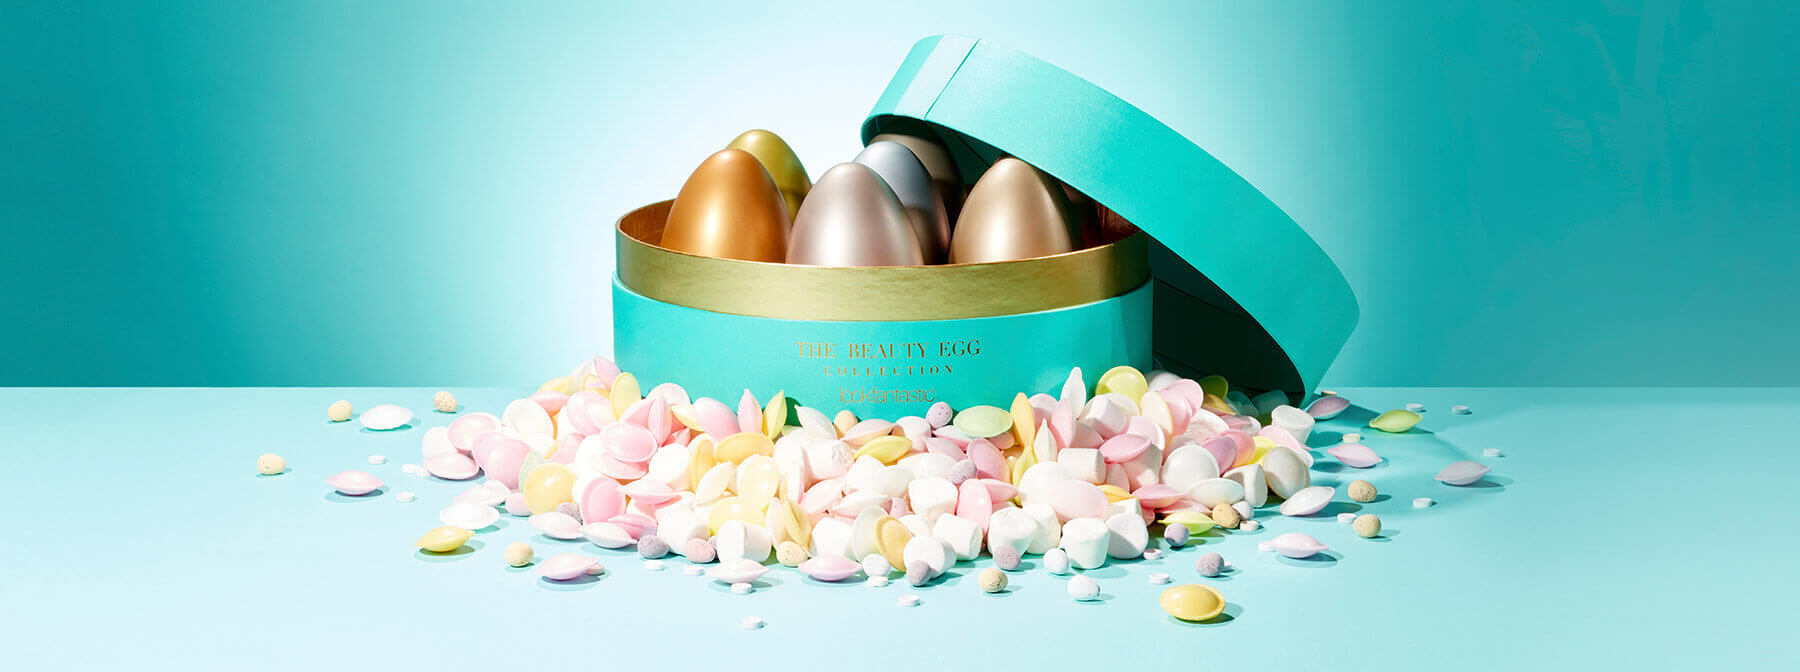 Beauty EGG waiting list